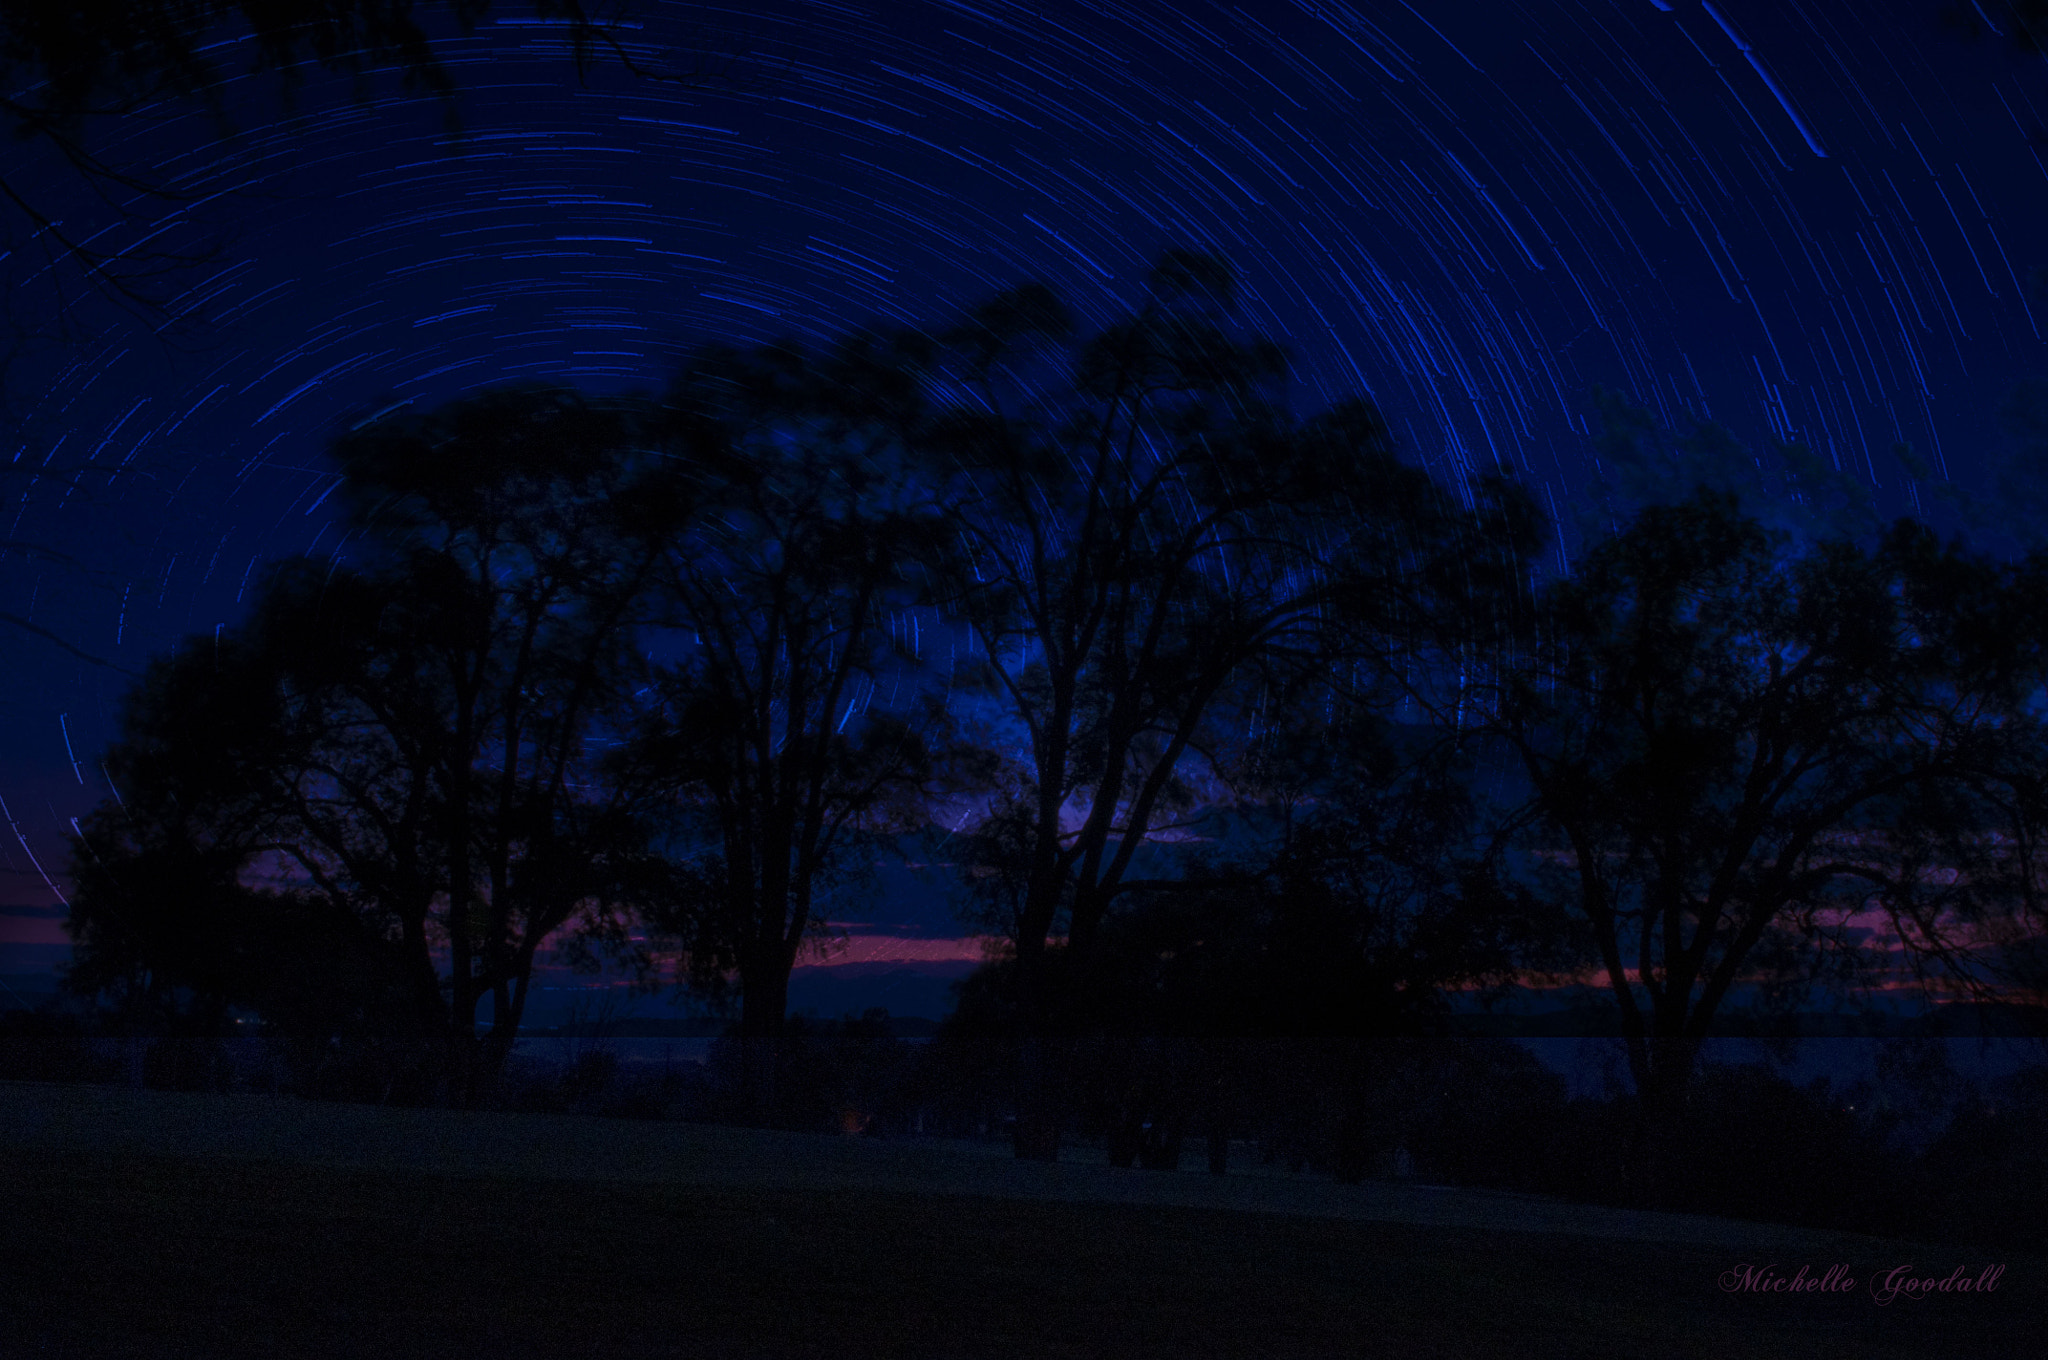 Photograph Star trails by Michelle Goodall on 500px